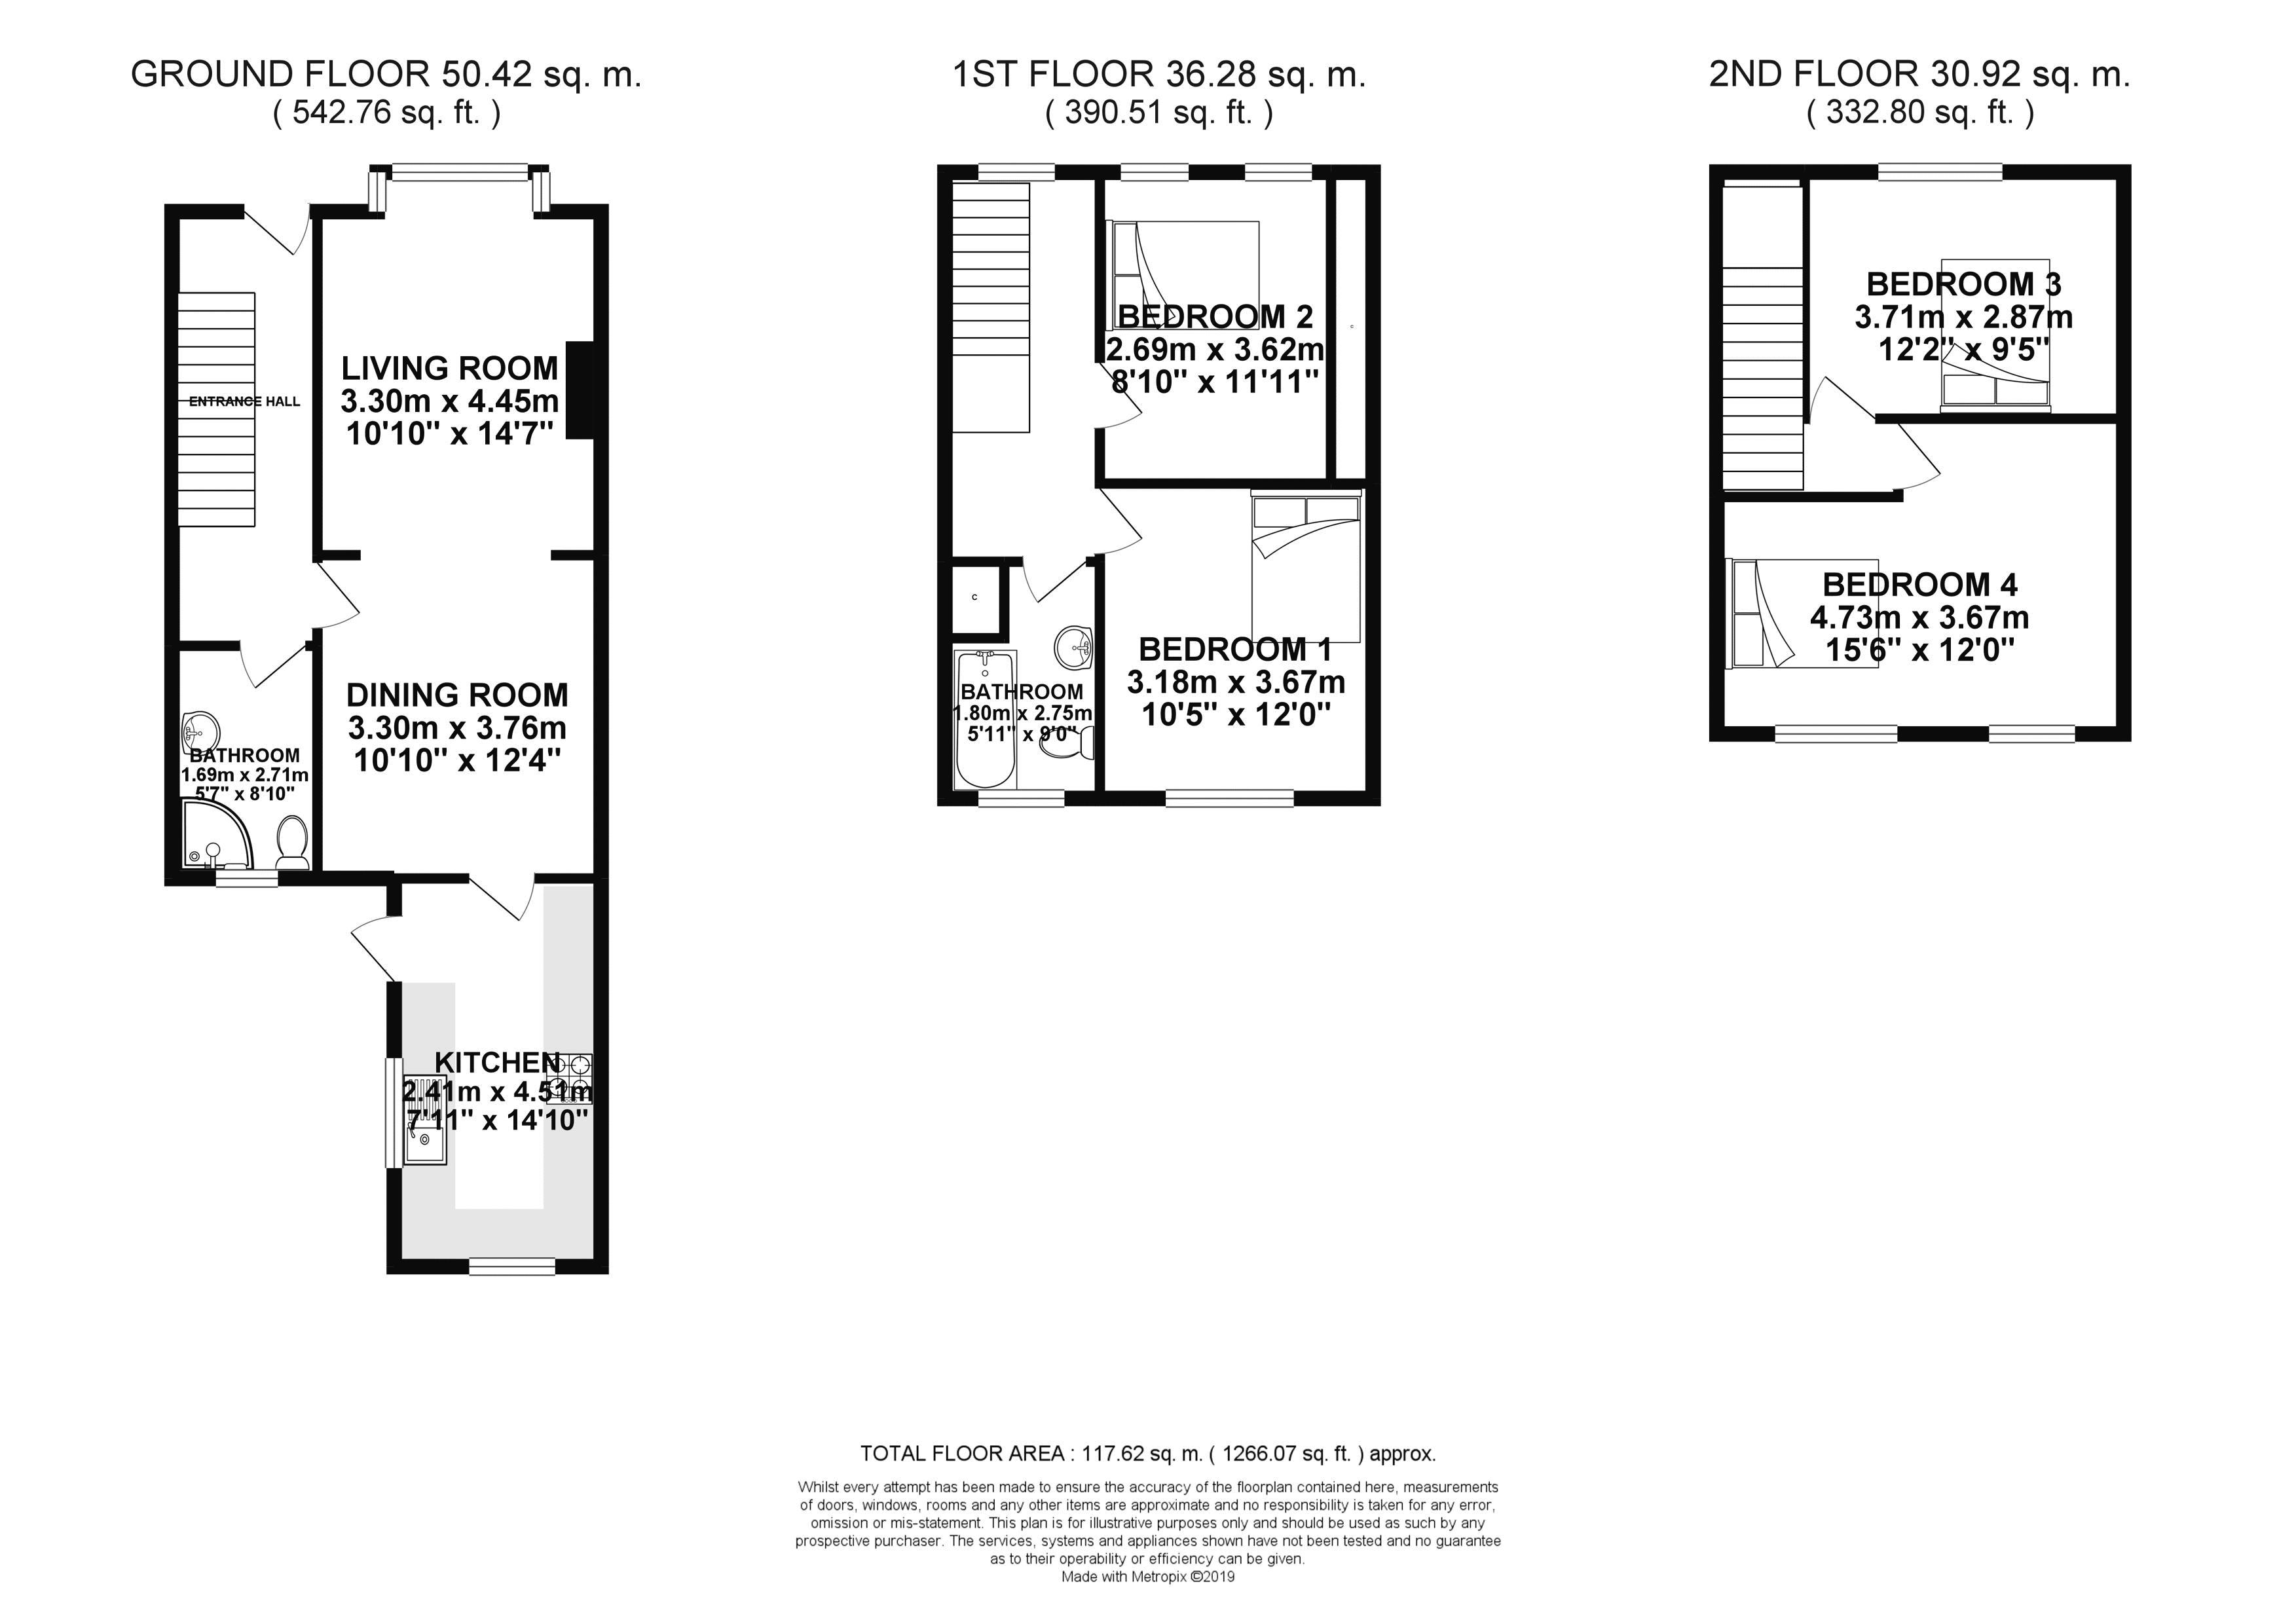 Floor plans for Buller Road, Brighton property for sale in Coombe Road, Brighton by Coapt